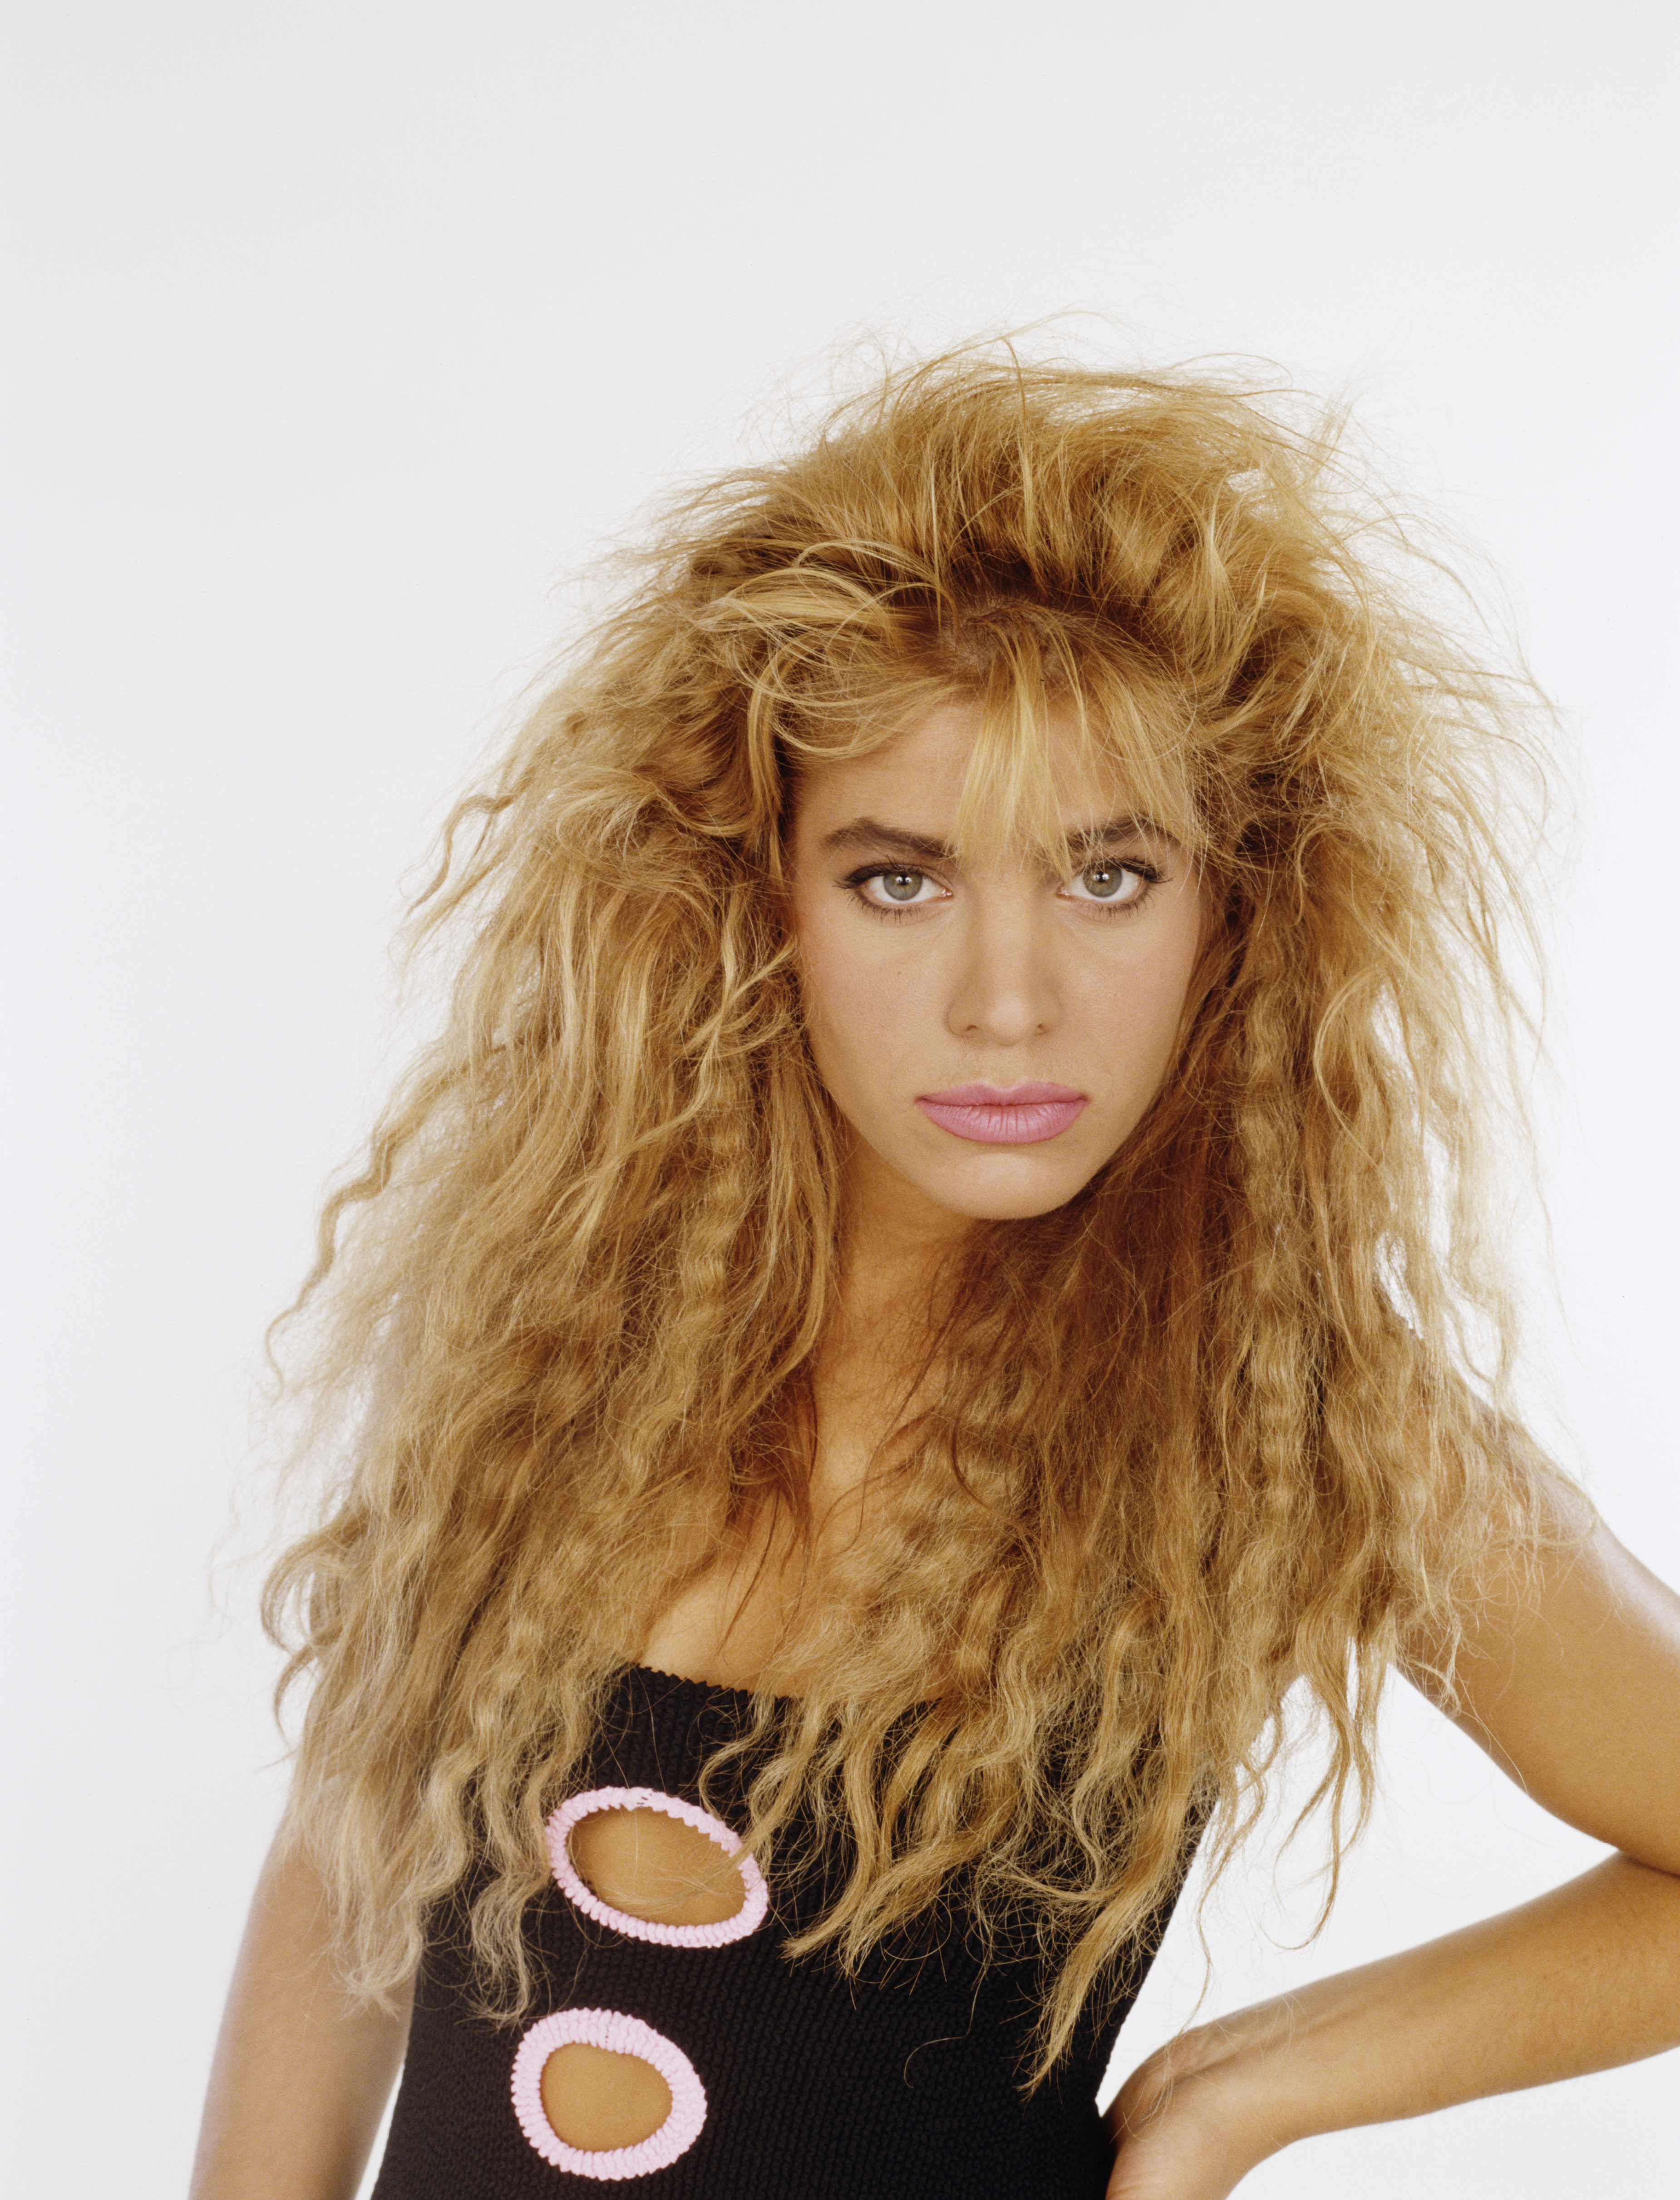 Astonishing Bad 3980S Beauty Trends Embarrassing Eighties Hairstyles And Hairstyles For Women Draintrainus